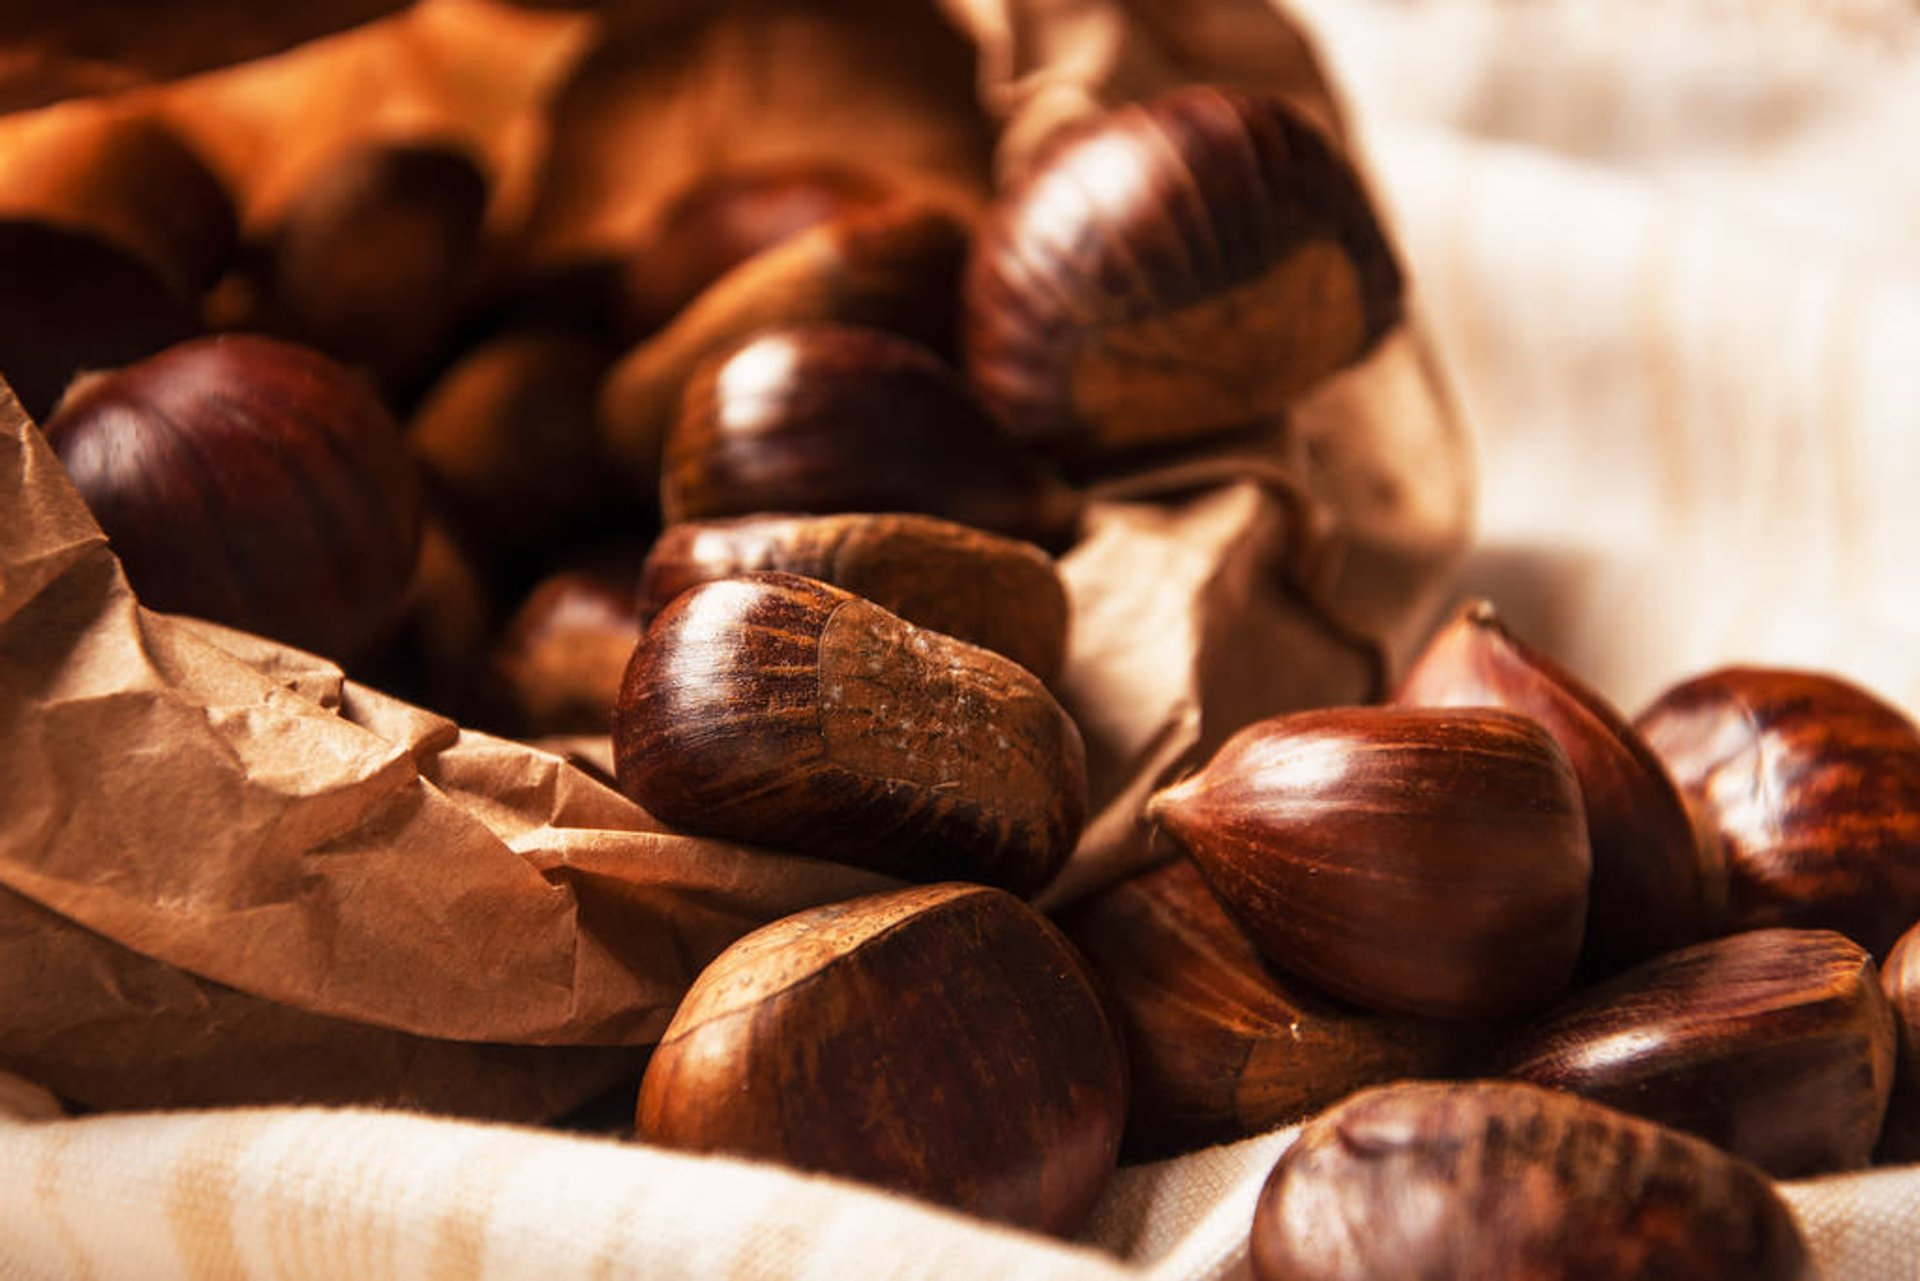 Sicilian Chestnuts in Sicily 2020 - Best Time